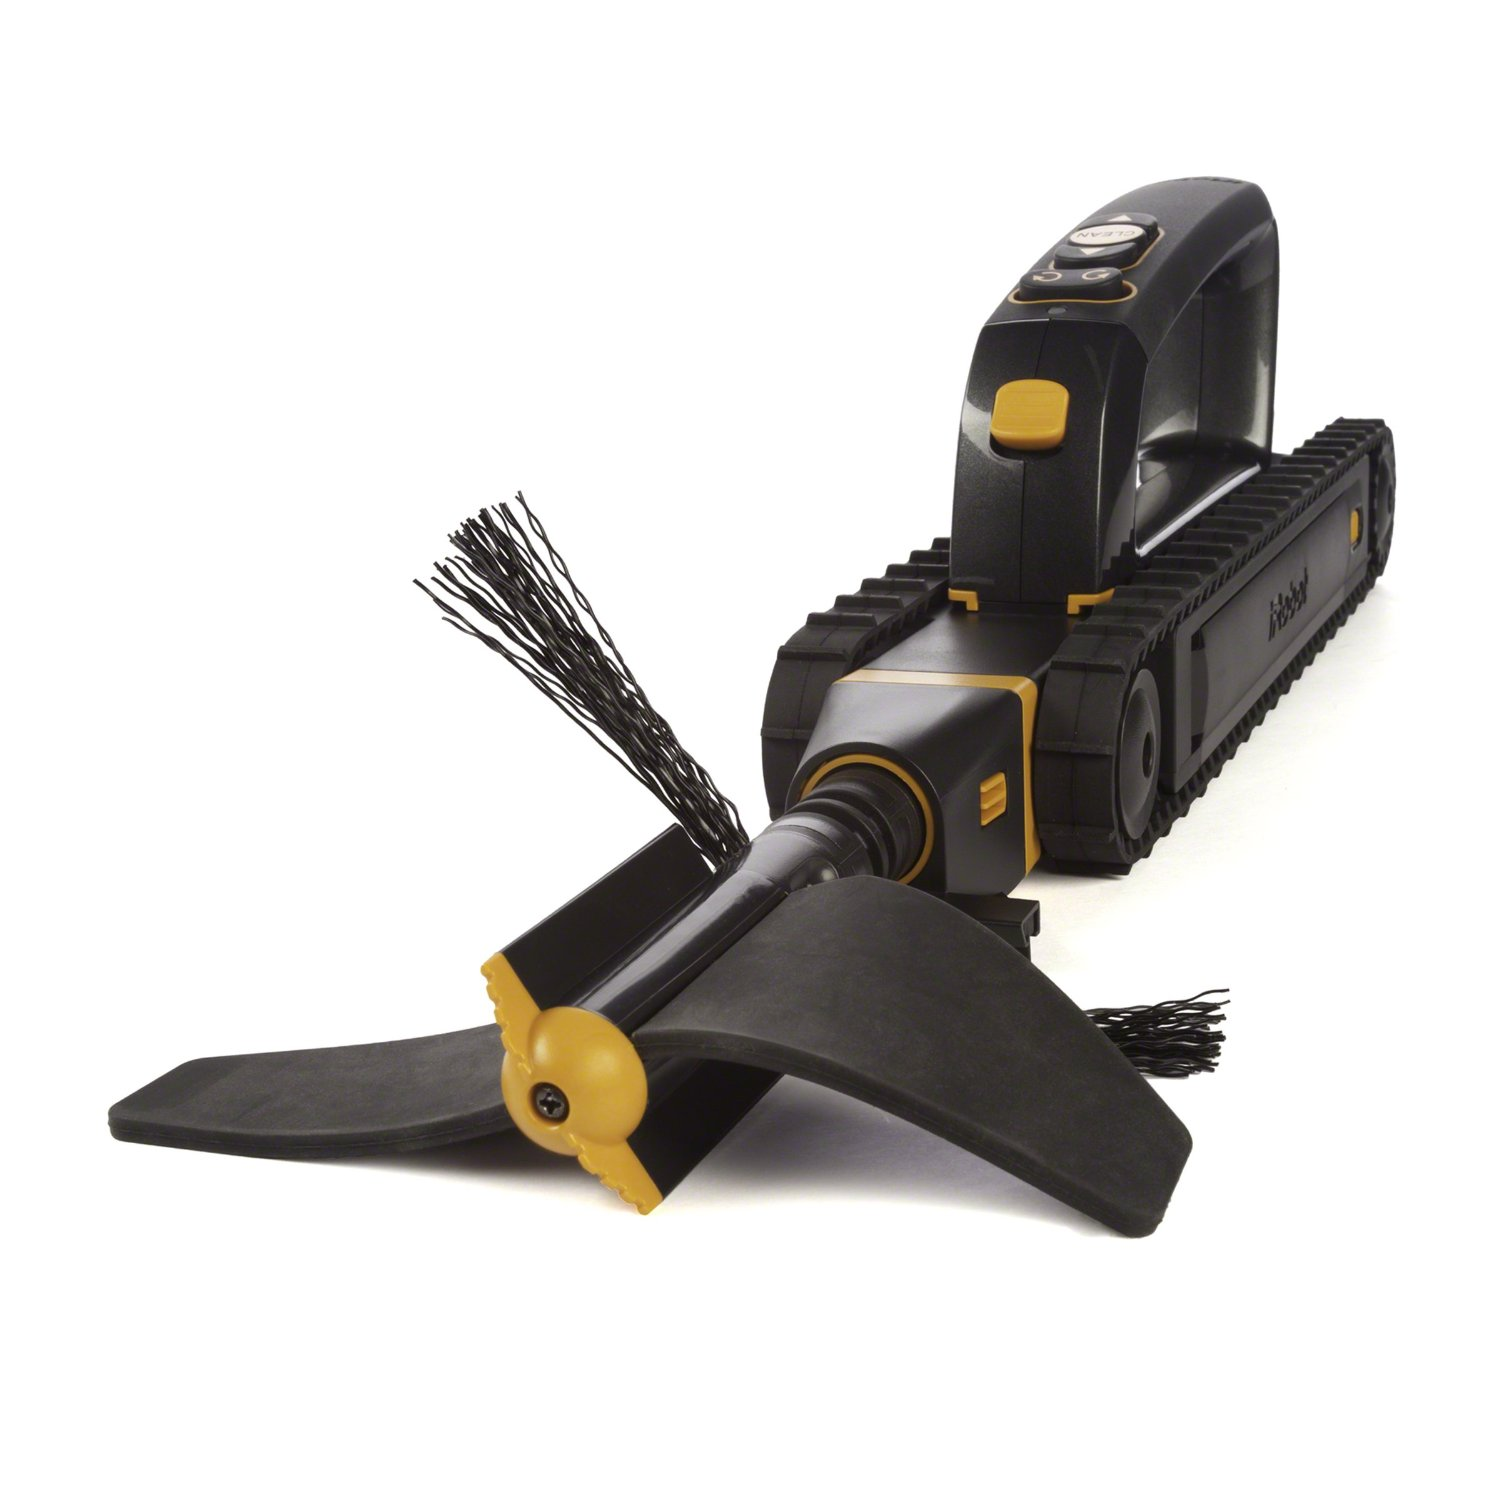 Looj cleans by using spinning auger breakers to split apart clogs (1),  ejectors to lift and throw debris from gutters (2), and sweepers and  scraper follow ...